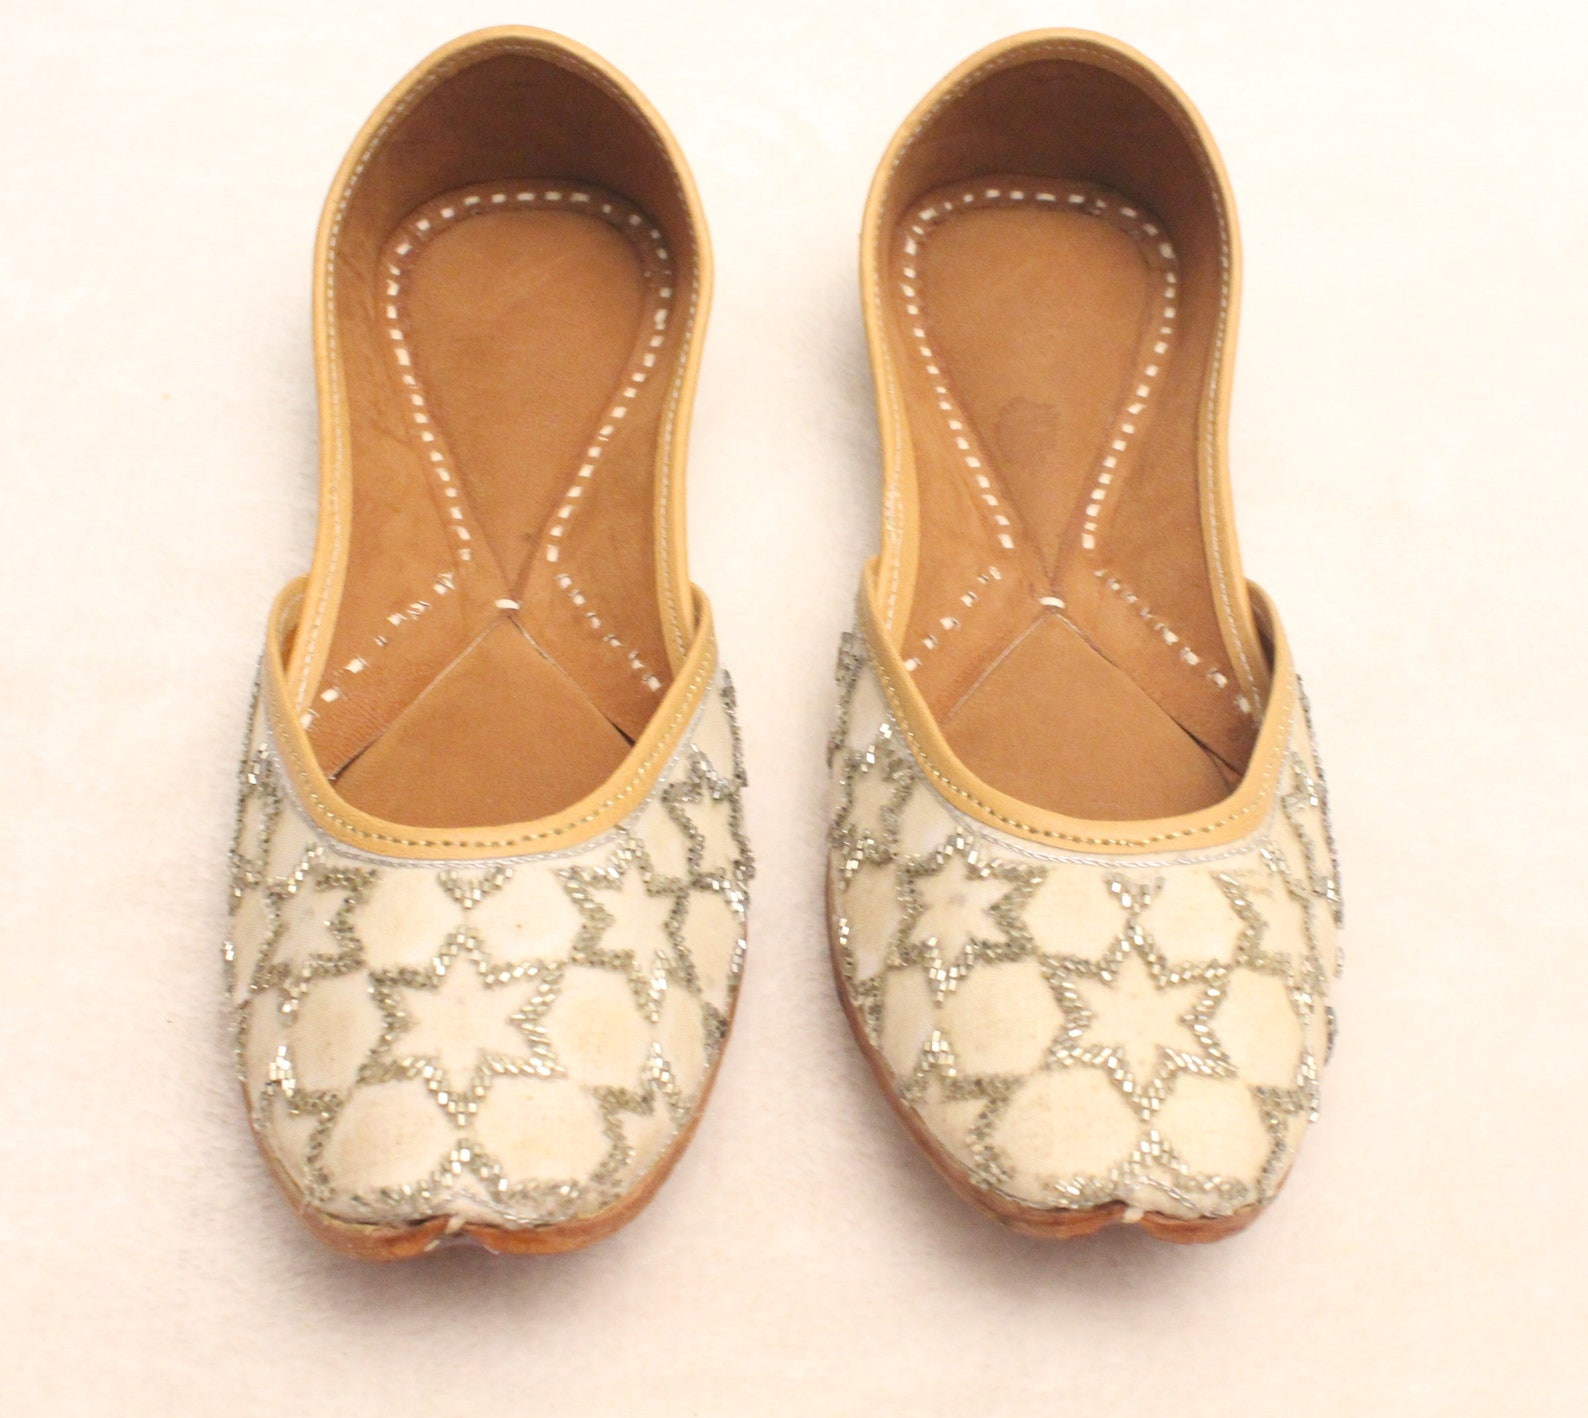 white shoes/women bridal wedding silver star jutti shoes/punjabi flats/silver ballet flats/khussa shoes/fancy juti shoes/